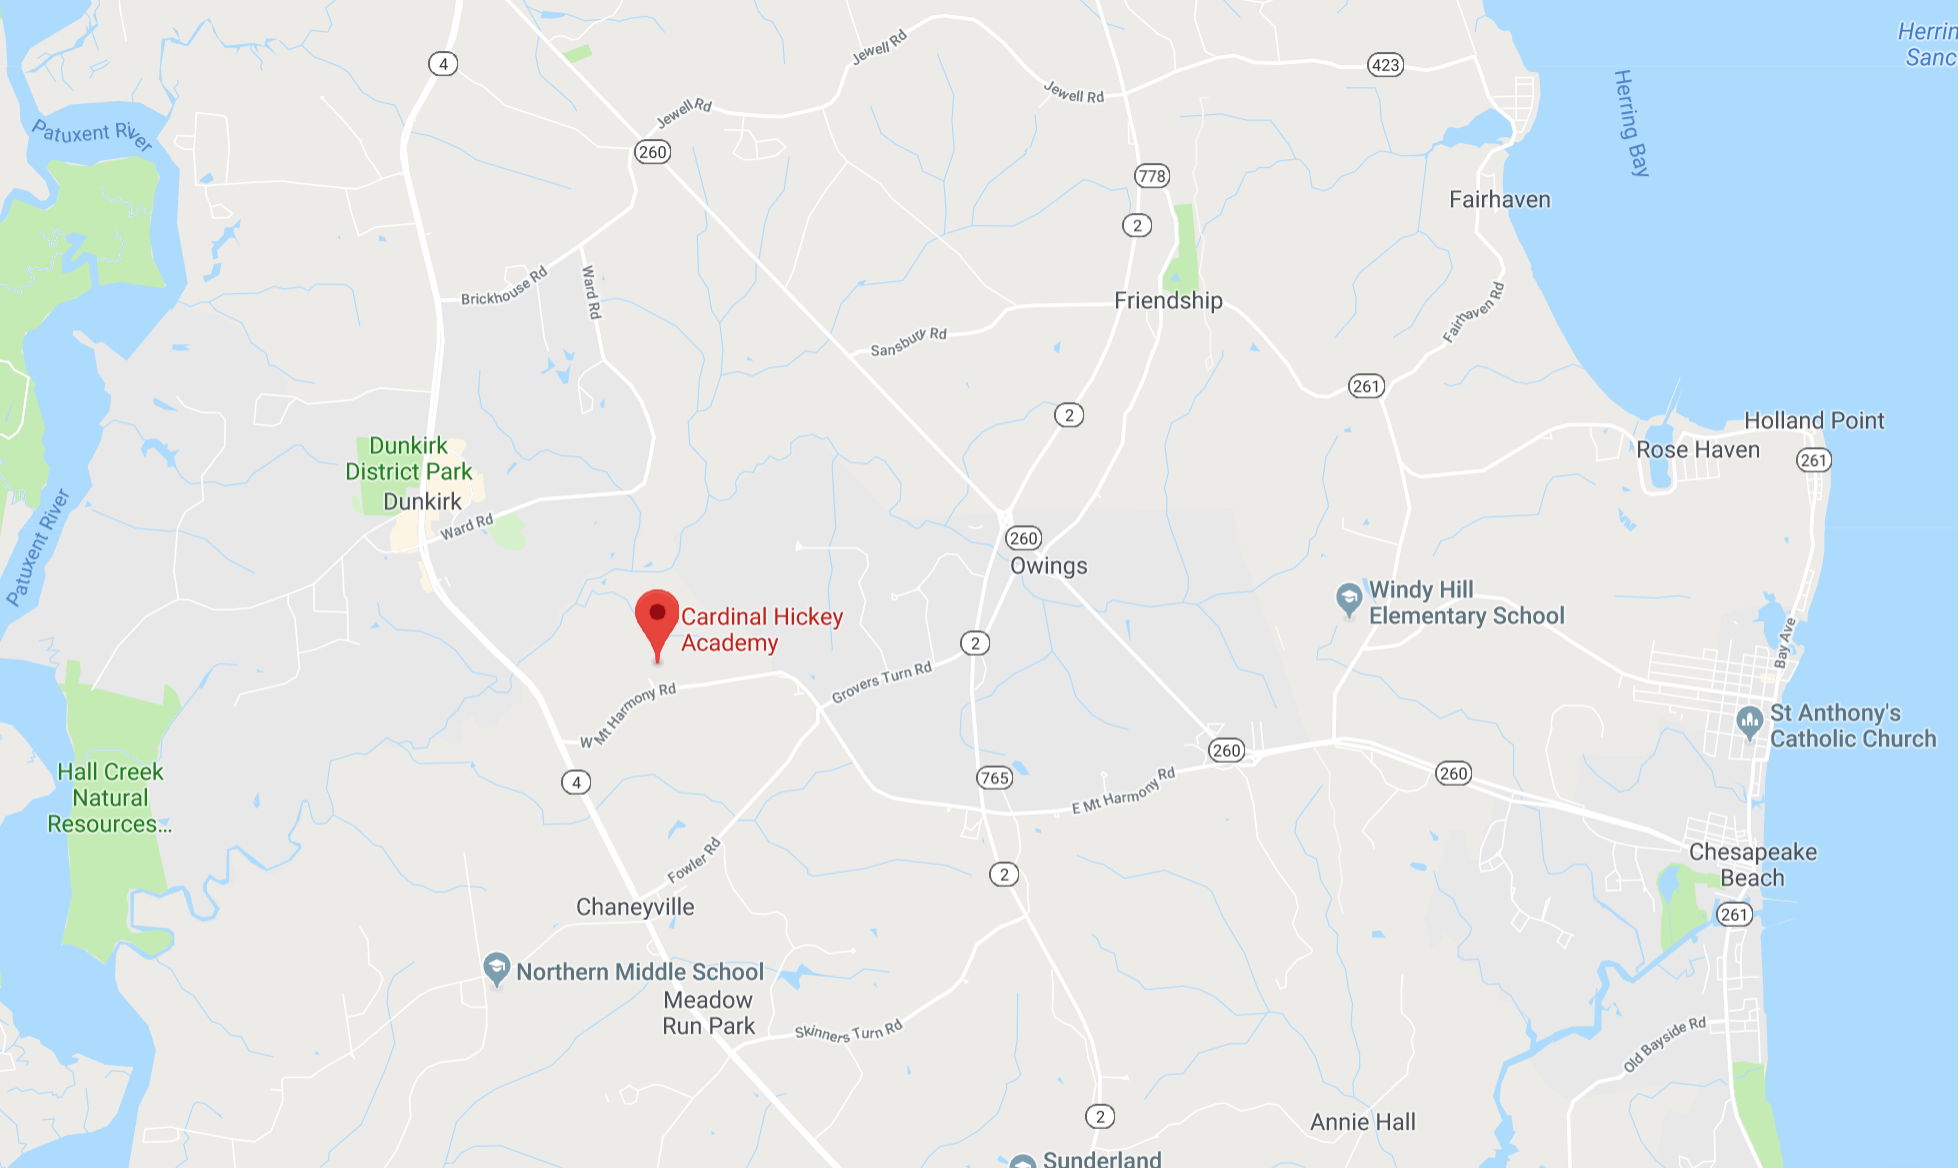 Location   Cardinal Hickey Academy is located Owings, MD in northern Calvert County. Most of our students reside in Calvert and Anne Arundel counties. We are within commuting distance to Washington, DC, Annapolis, Baltimore Joint Base Andrews and parts of Southern Maryland.